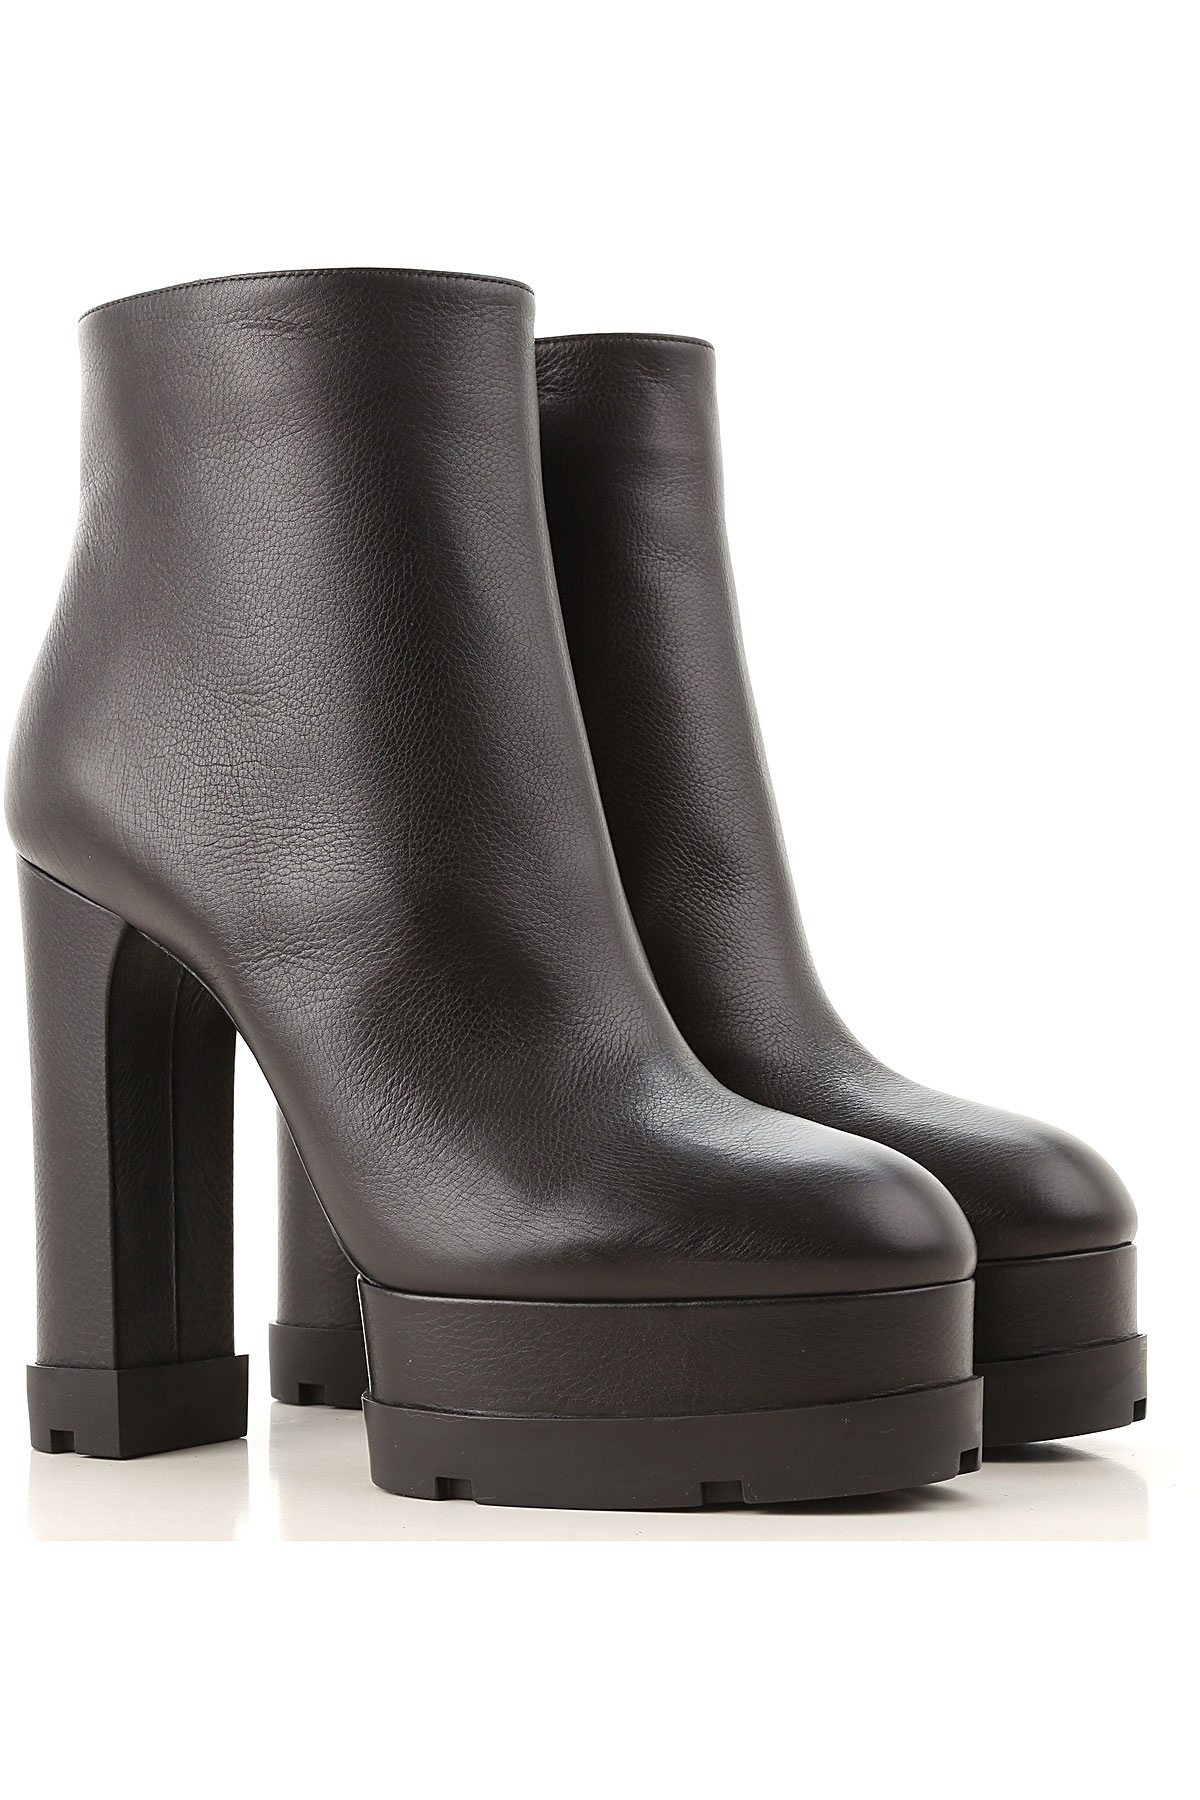 Casadei Boots for Women, Booties On Sale, Black, Leather, 2019, 5 8 9